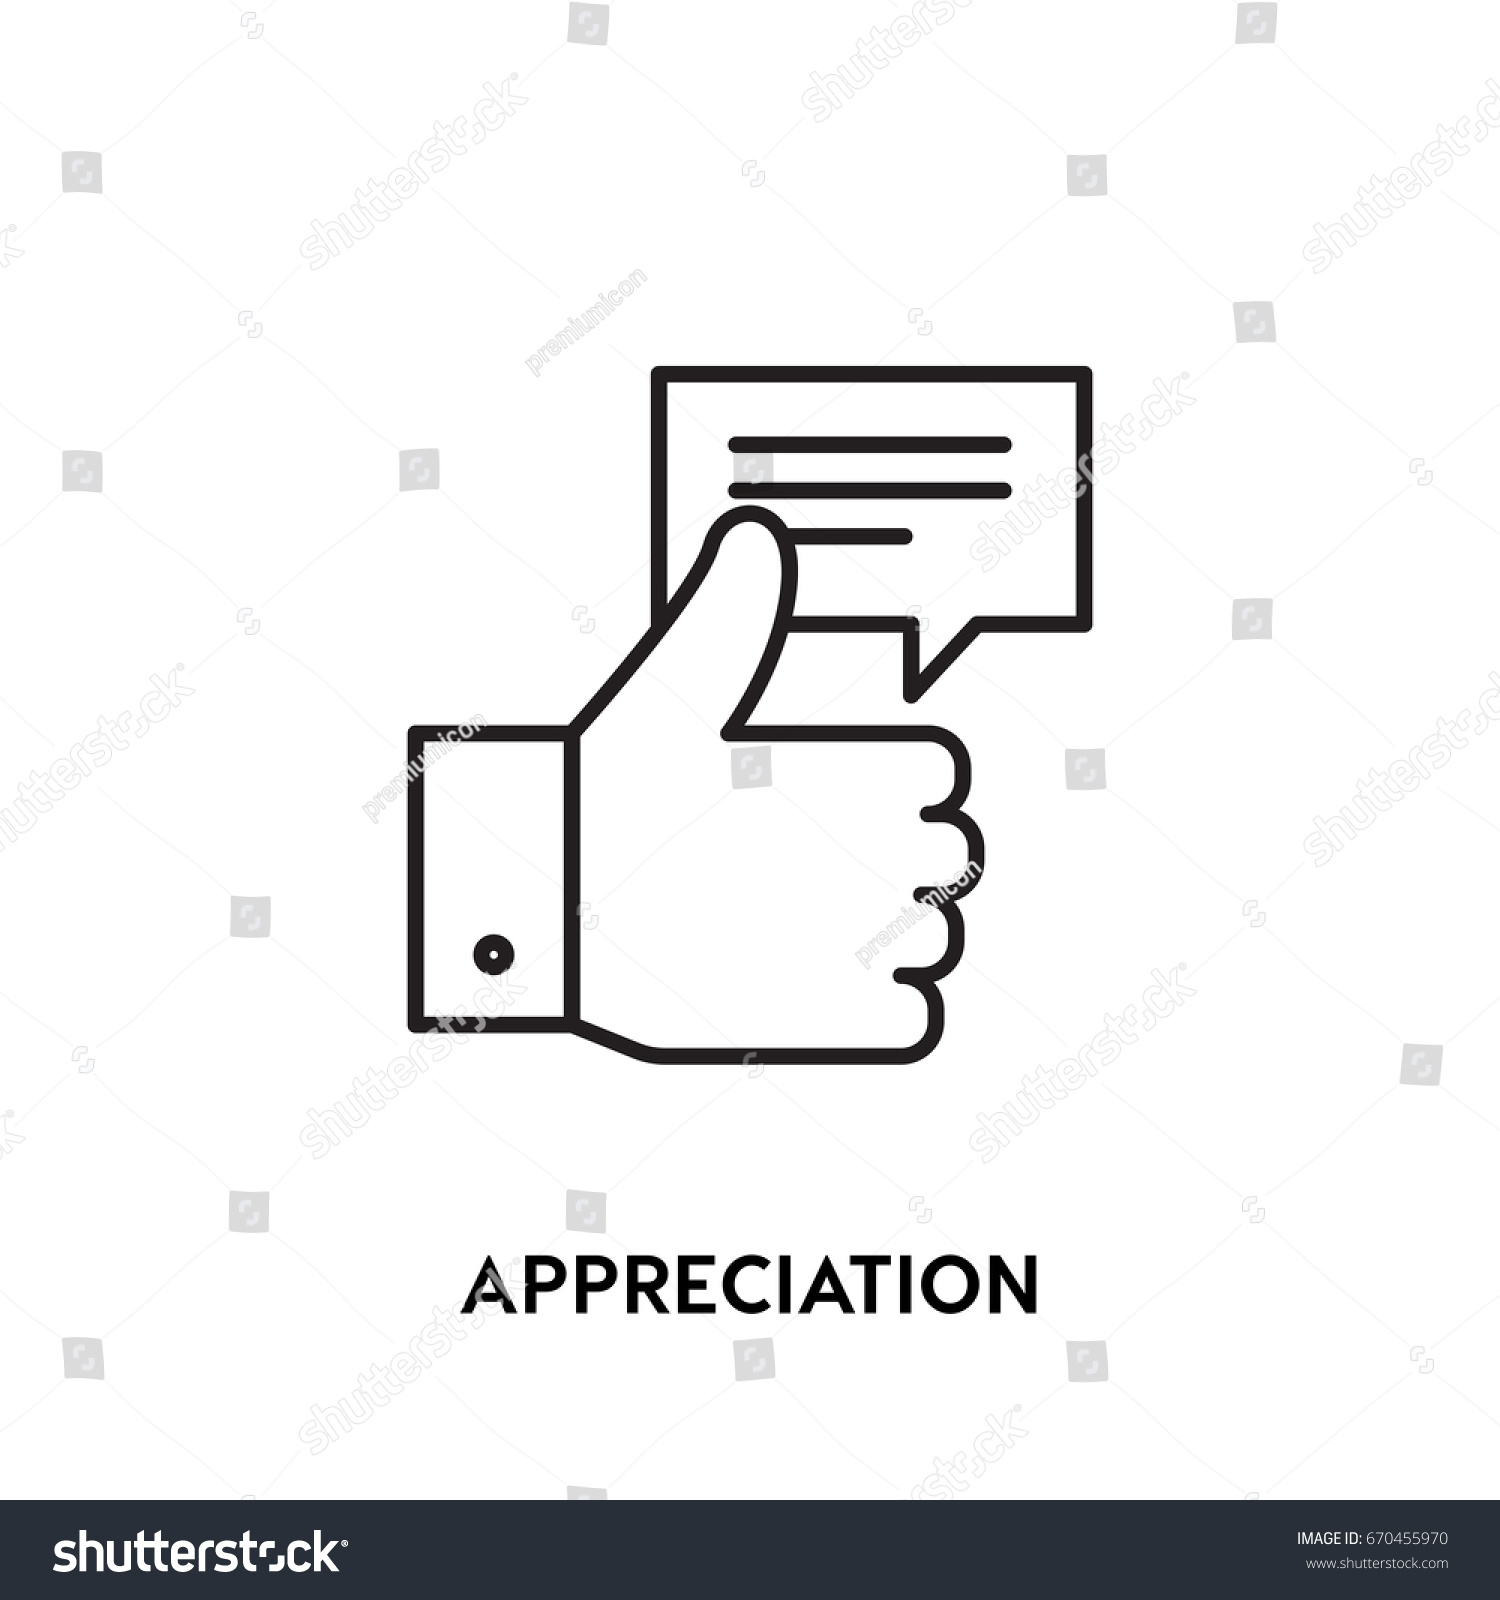 Appreciation vector icon like symbol modern stock vector 670455970 appreciation vector icon like symbol modern simple flat vector illustration for web site buycottarizona Choice Image